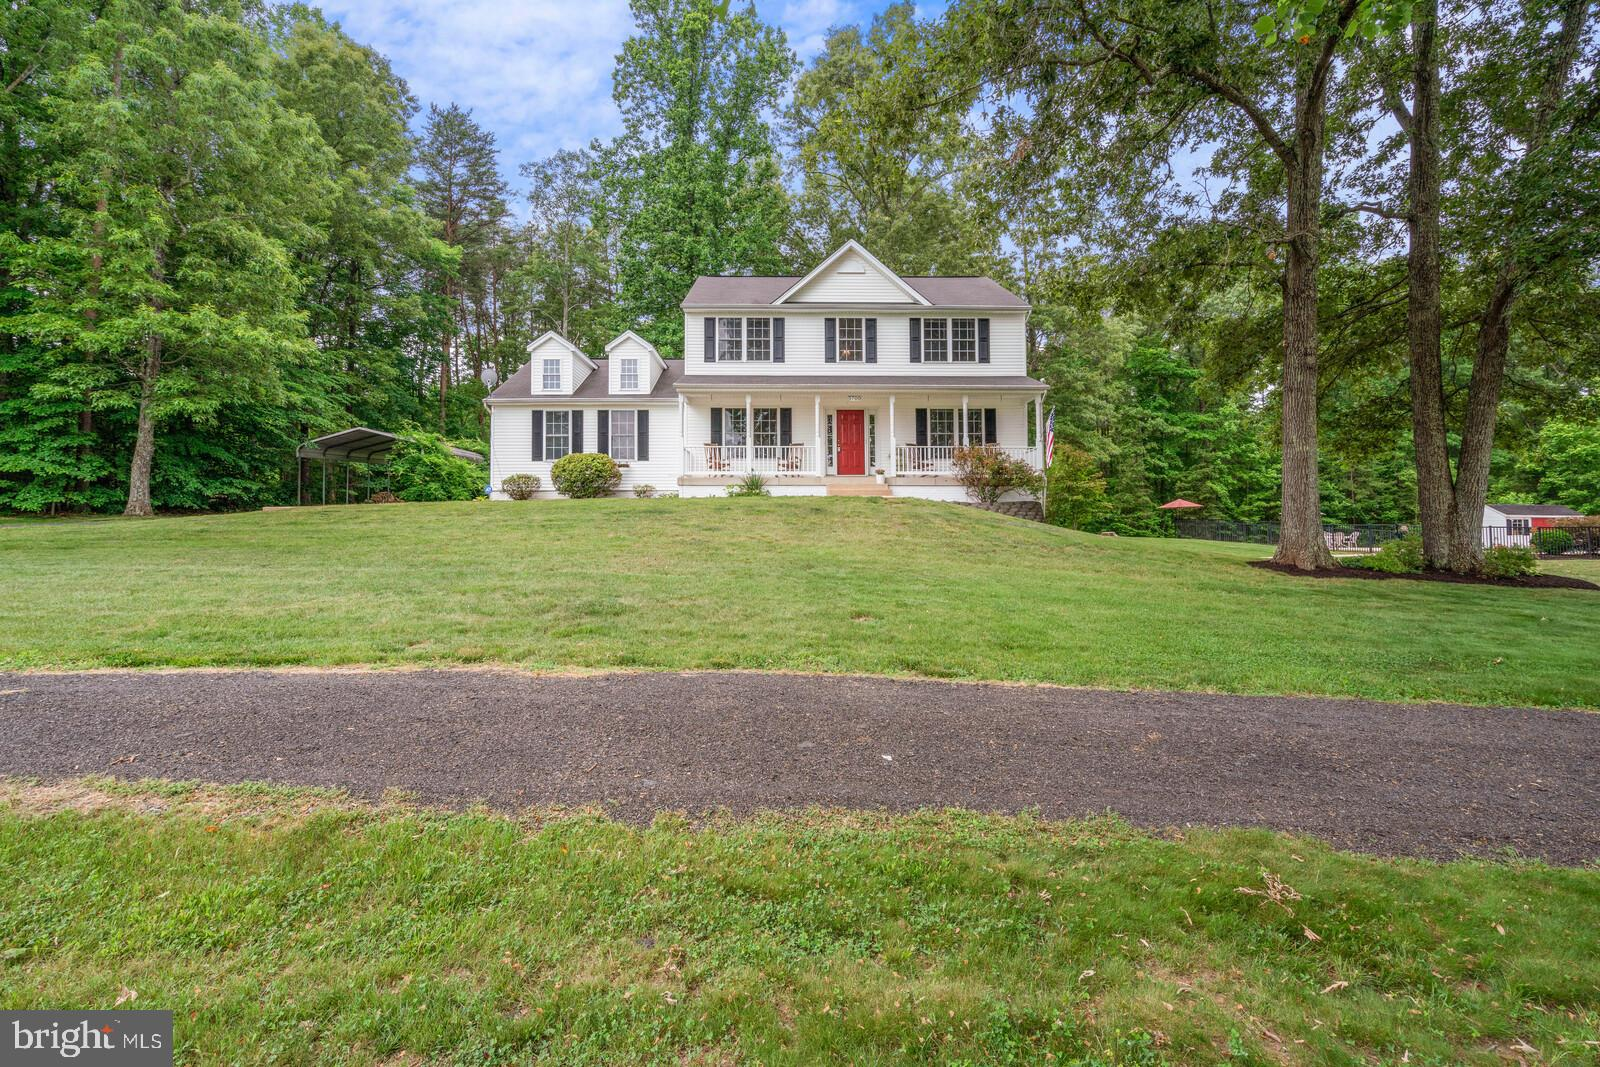 Exceptional colonial with beautiful in-ground pool on 6.5 acres in Spotsylvania, VA.  The kitchen with stainless steel appliances, island and large pantry opens to the breakfast area and family room with gas fireplace. Beyond the sliding glass doors, a 24 X 12 deck makes outdoor gatherings easy.  The main level also includes a separate dining room, sitting room, half bath and laundry.  Hardwood floors flow from the kitchen through the breakfast area, hallway, foyer and up the stairs.  The second level features the owner's suite with double vanity and walk-in closet, two additional bedrooms and a full bath.  Head to the lower level to enjoy a spacious recreation room with pool table, large bar area, hobby/weight room, full bath and a laundry/utility room.  The walk-out offers easy access to the pool and pool house with its full-size refrigerator.  A large detached garage with four high bay doors provides additional indoor parking for up to 6 vehicles.  A carport allows even more covered storage for watercraft, vehicles or equipment.  Mature woods to the side and rear of the property deliver privacy and views of nature.  A gutter guard system reduces maintenance and the zero-turn mower included with the sale will help you spend more time at your pool!